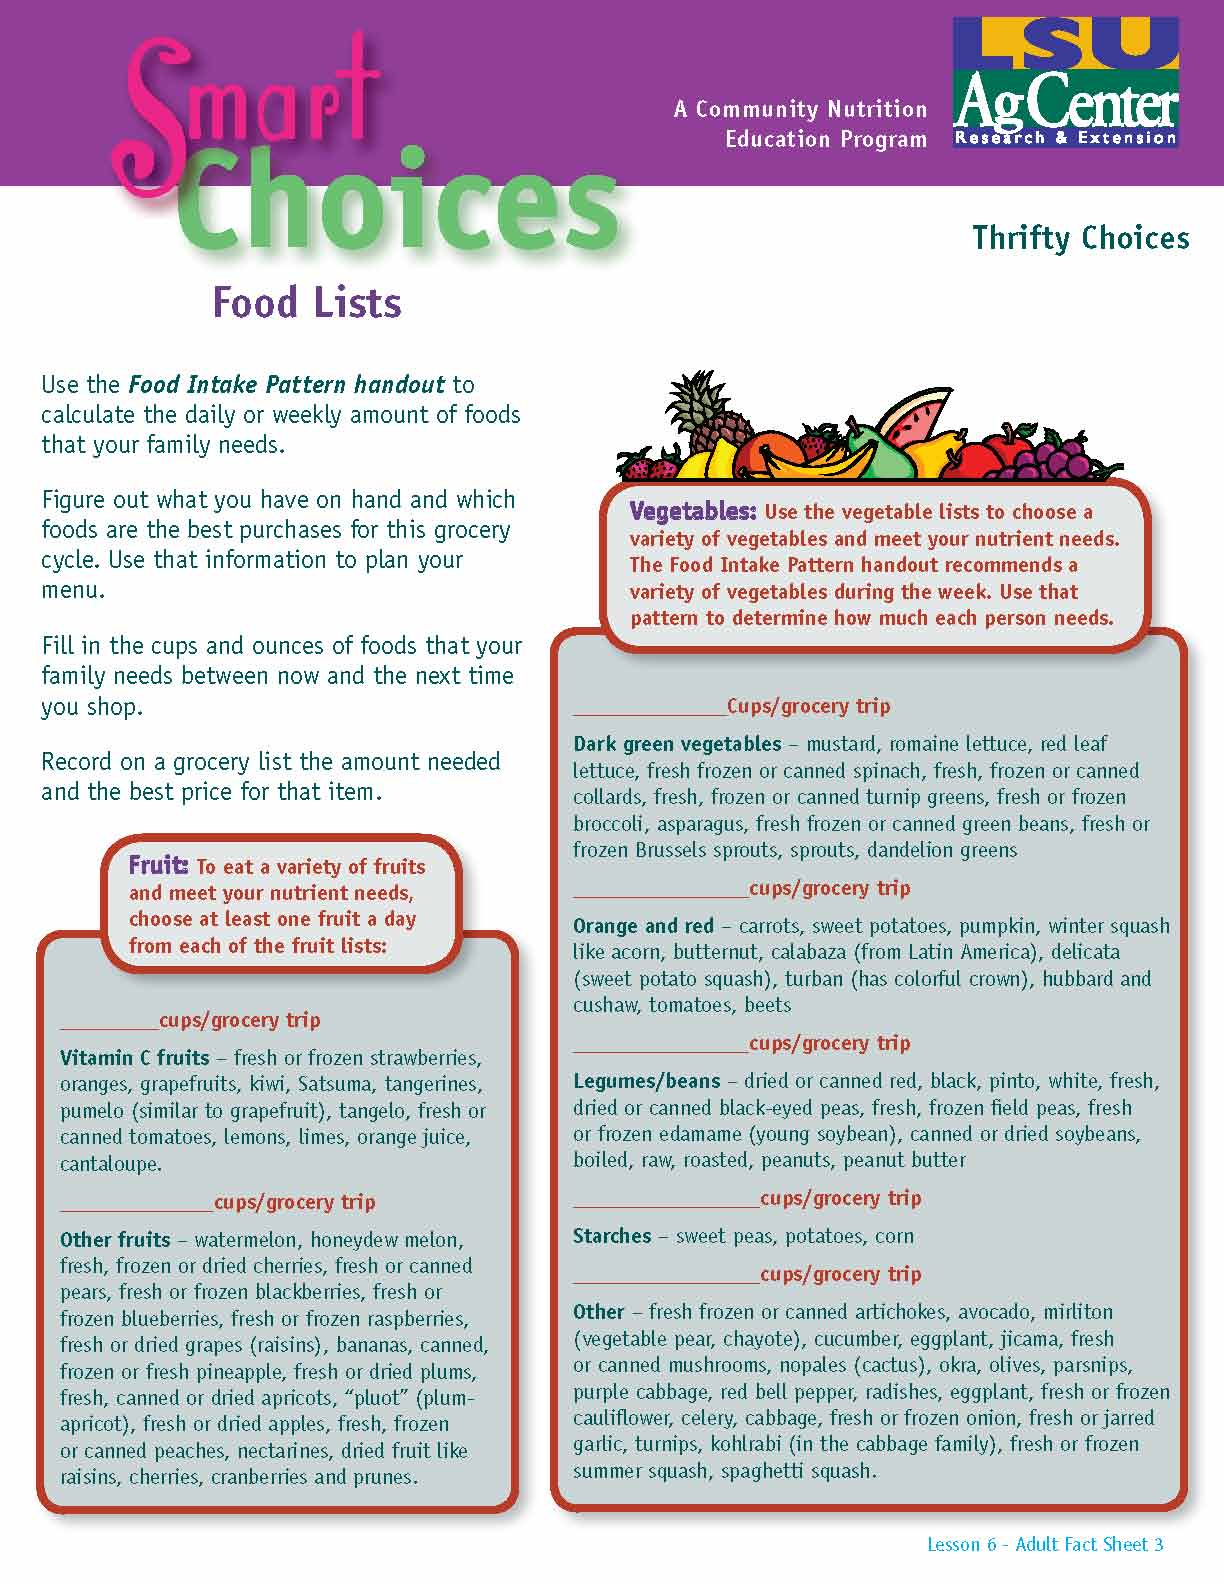 Smart Choices:  Food Lists